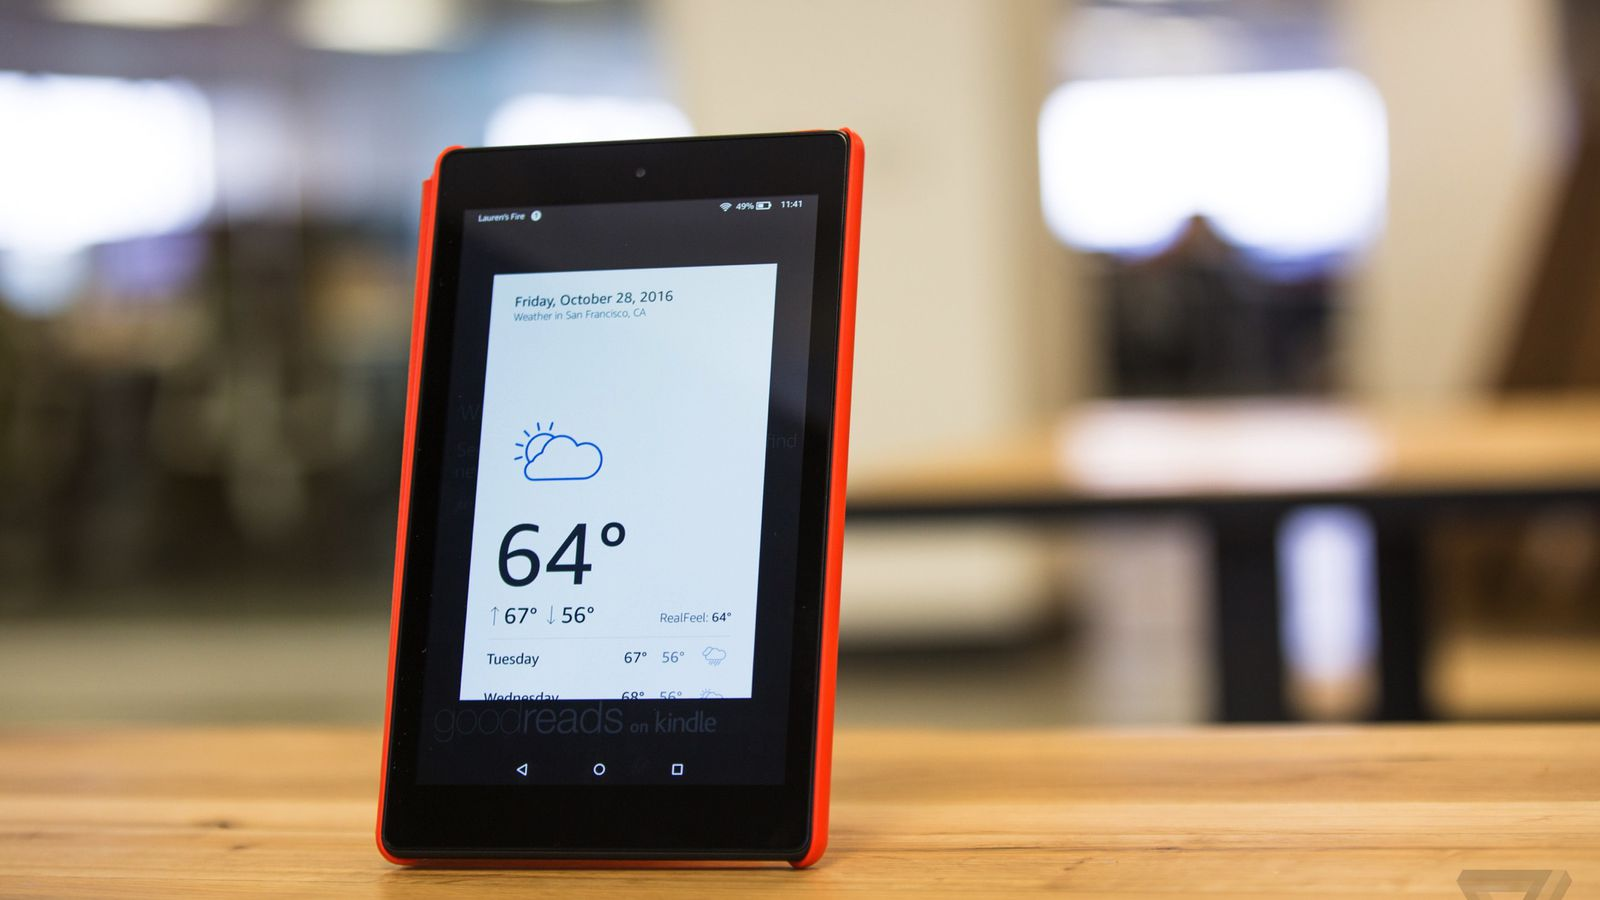 Amazon's Alexa now works on tablets, but the best new feature